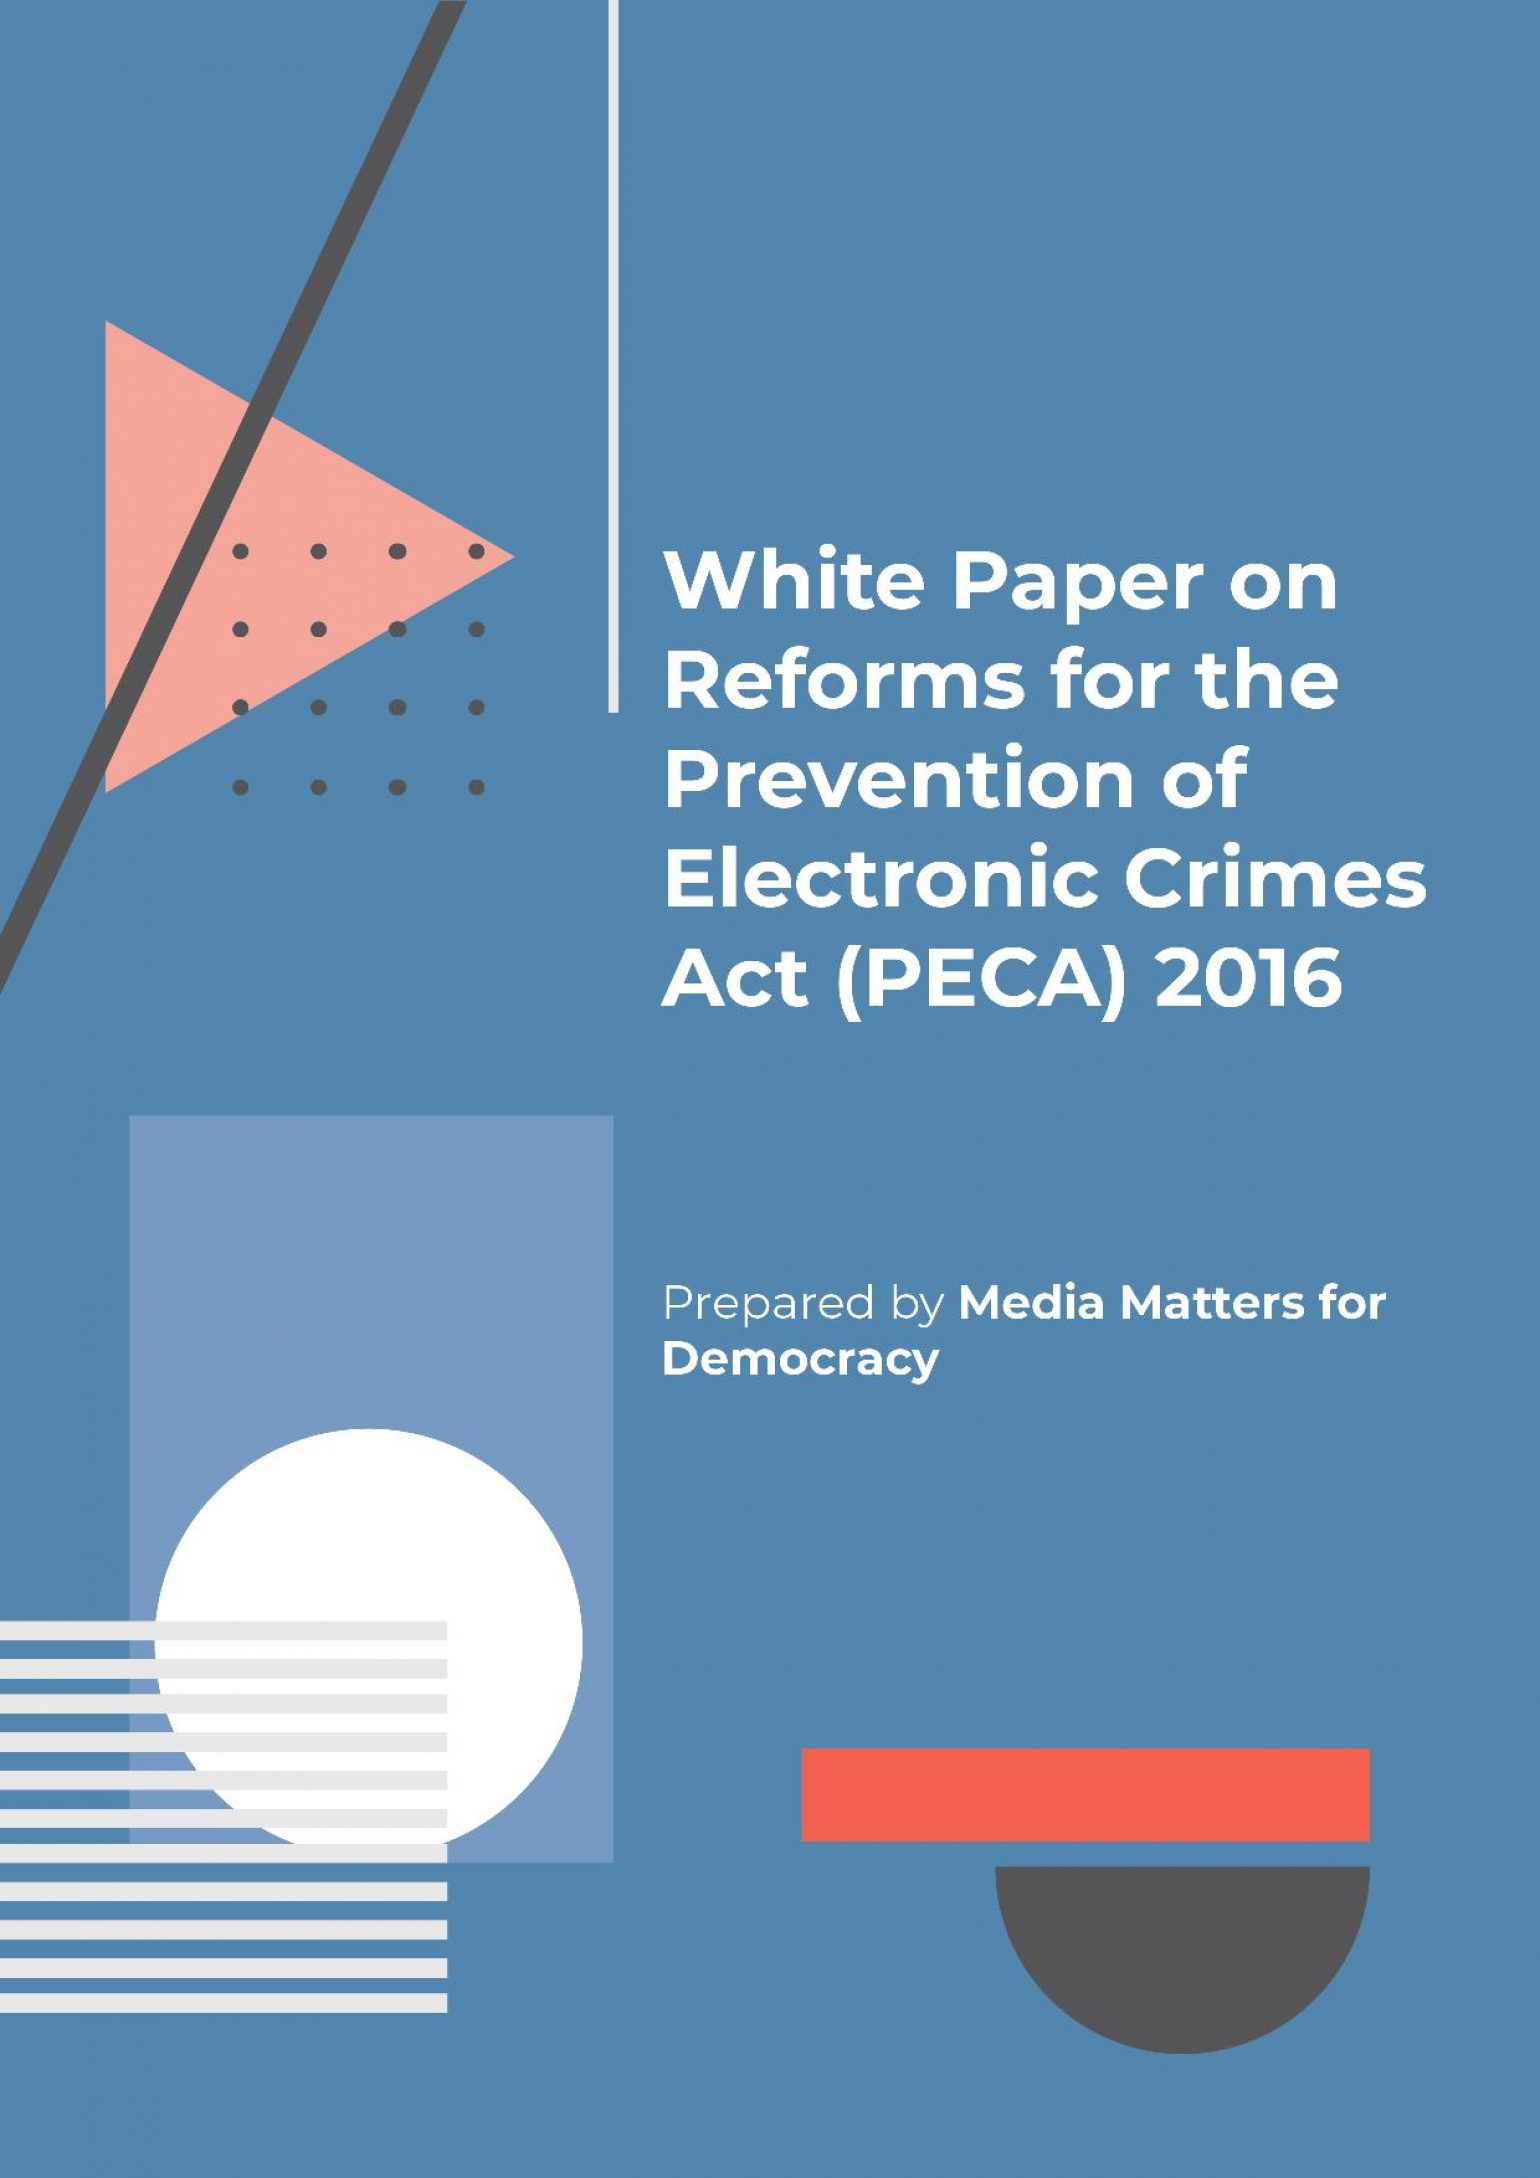 Media Matters for Democracy publishes White Paper on Reforms for PECA 2016